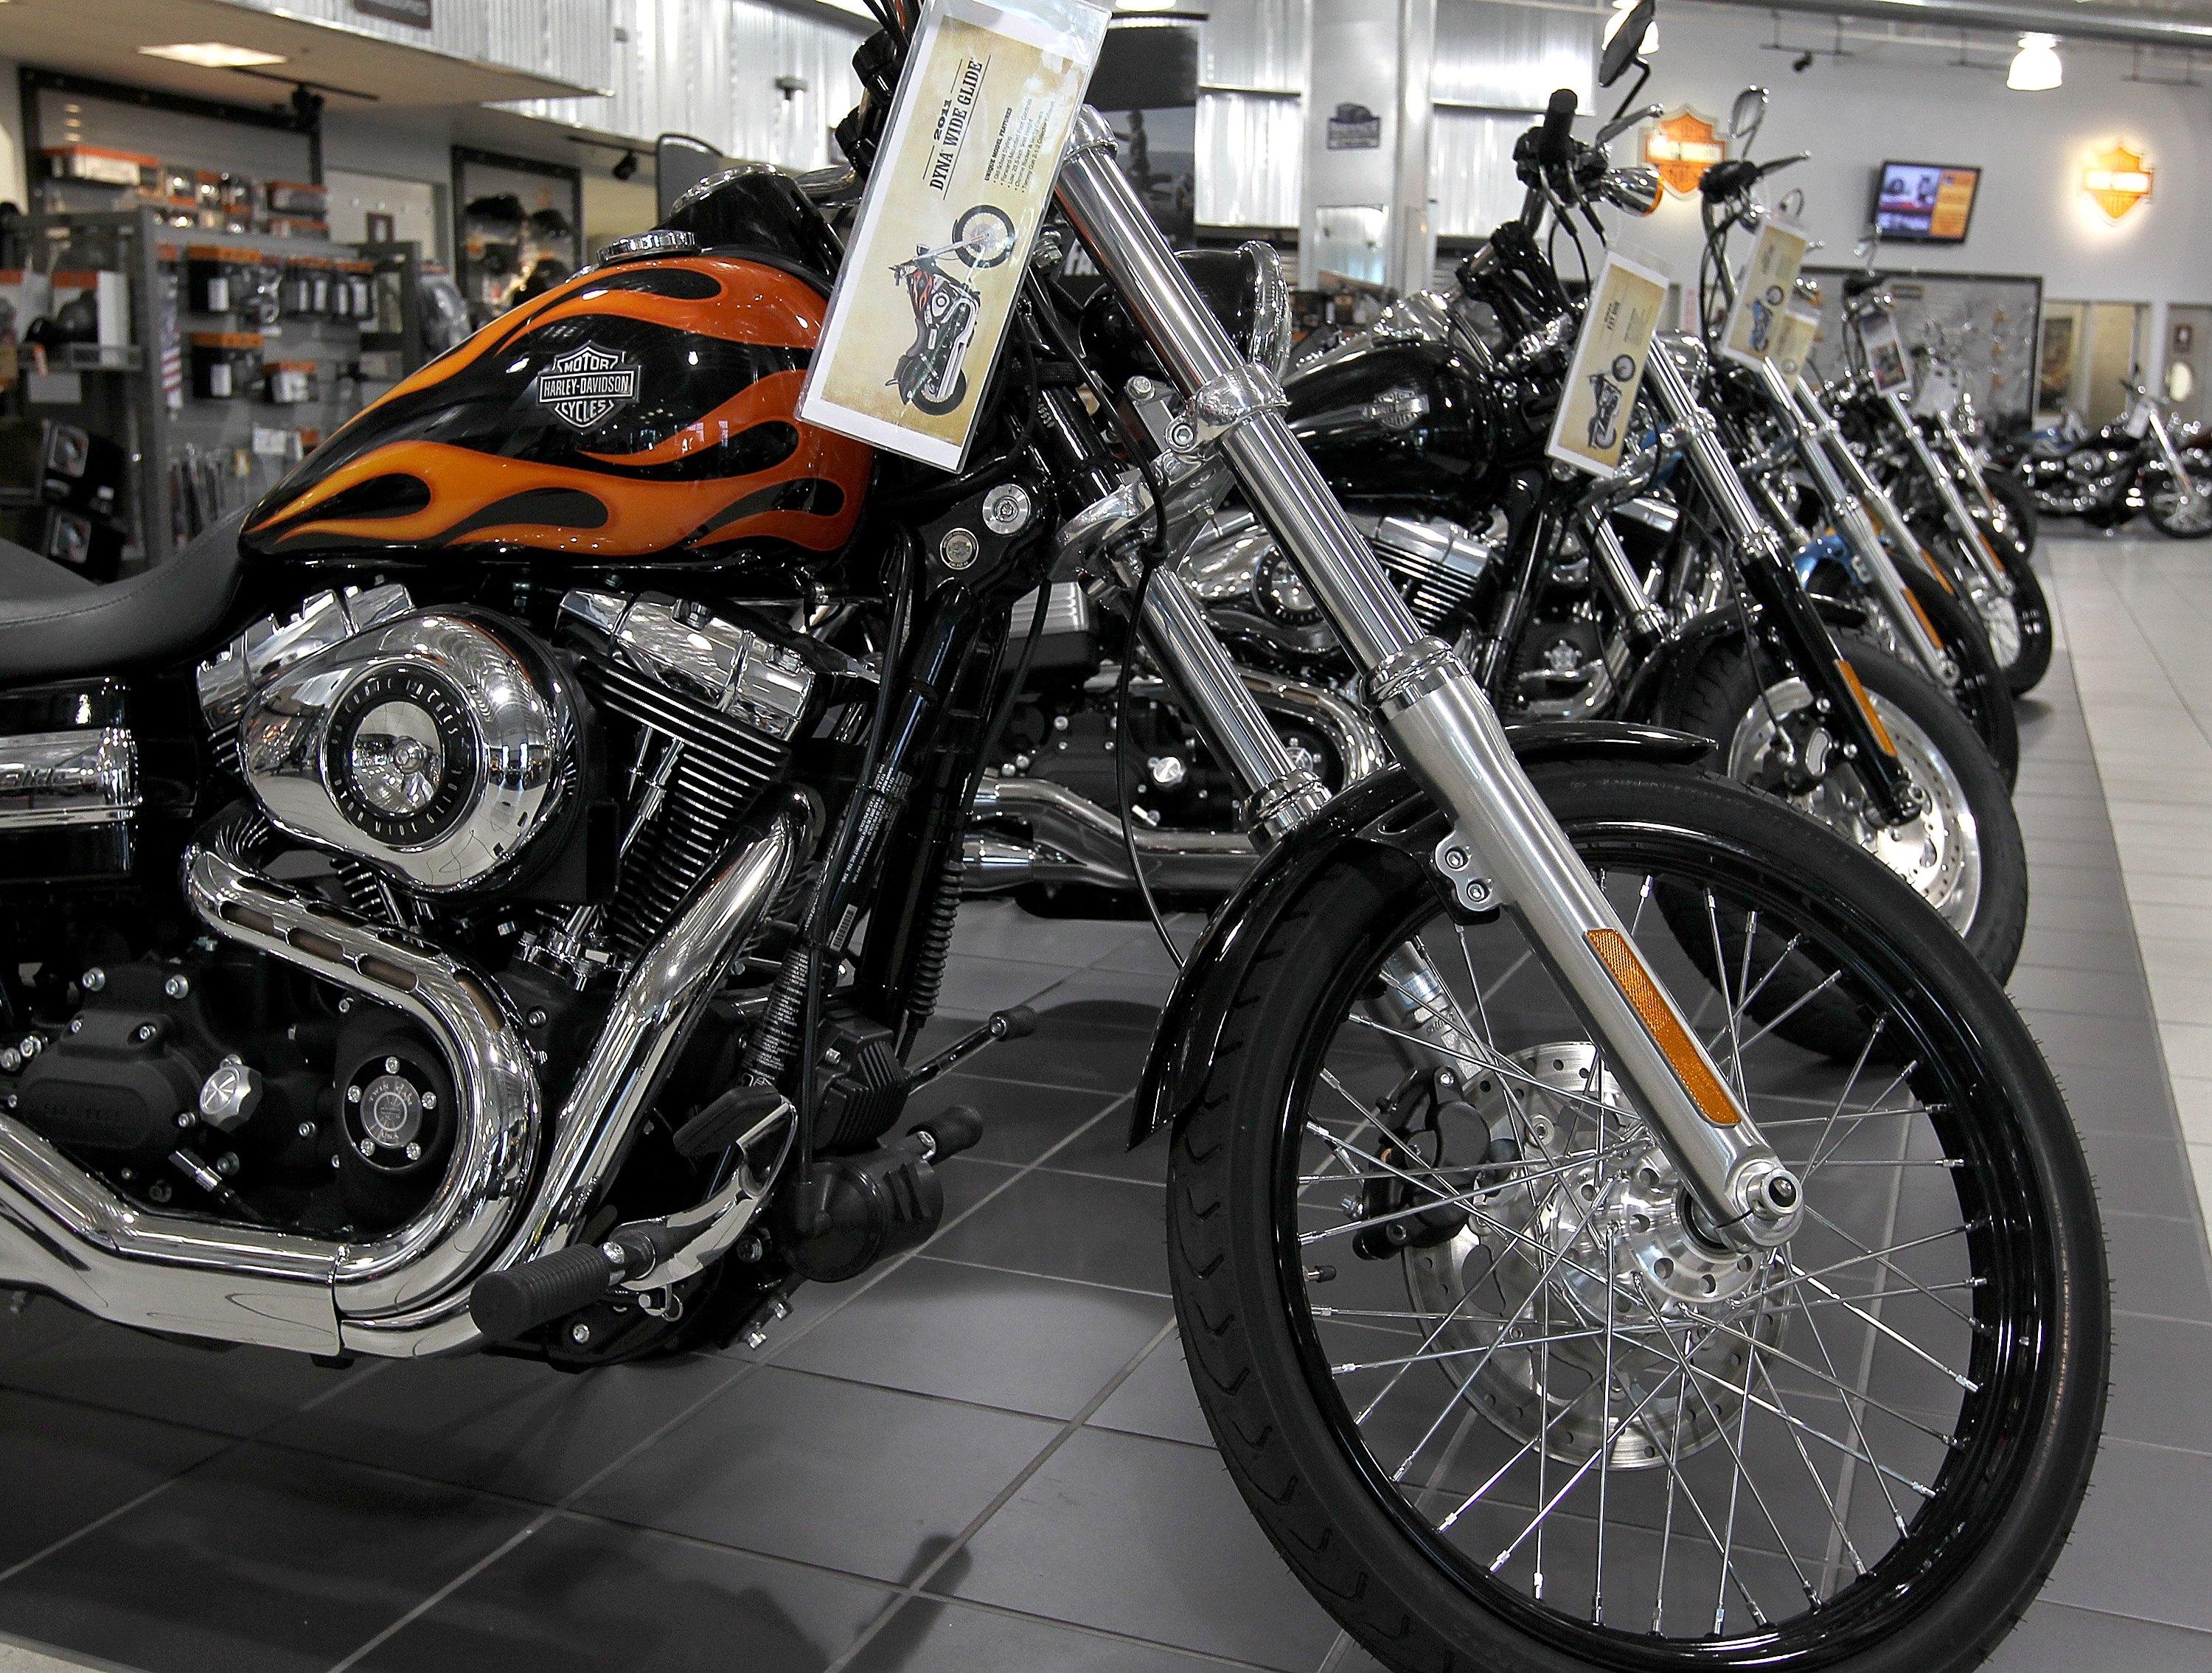 How to Find Out What Year a Harley Davidson Motor Is? | Our Pastimes